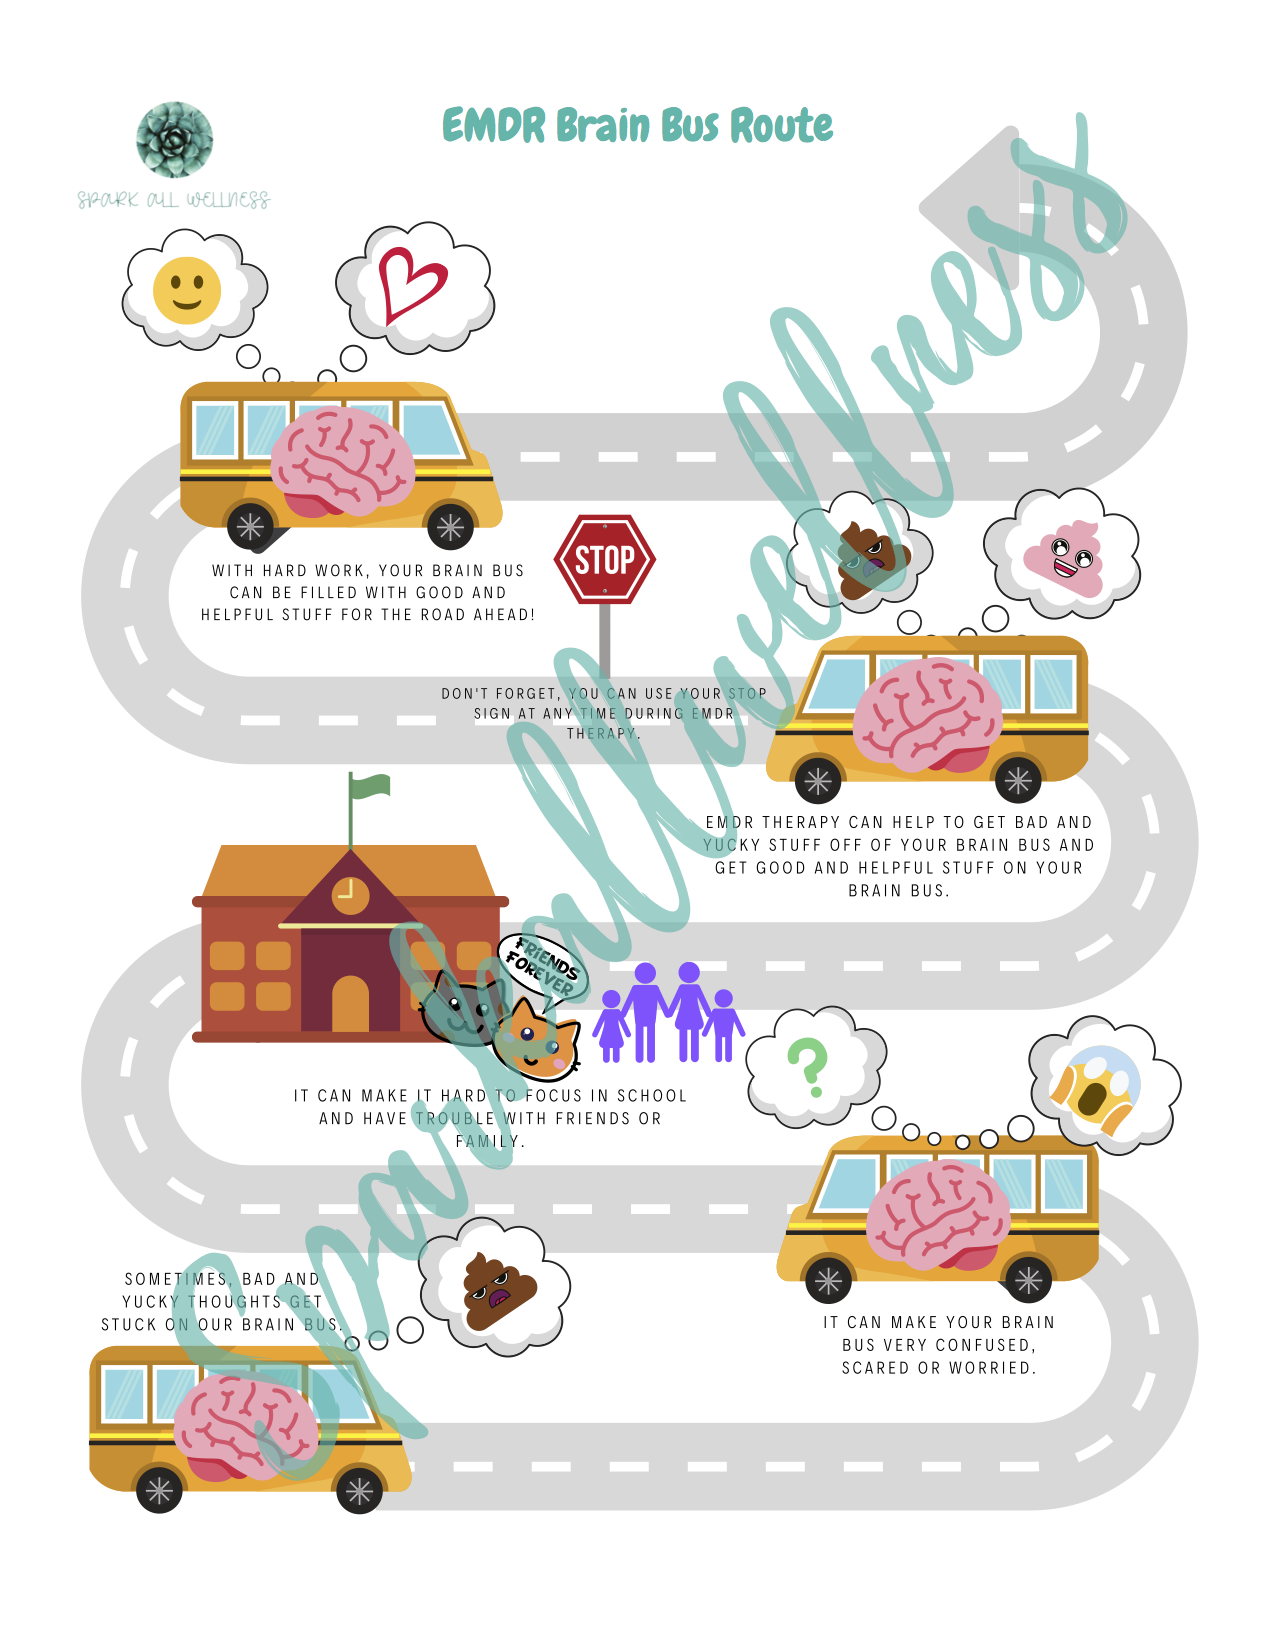 Emdr Bus Route Explanation In